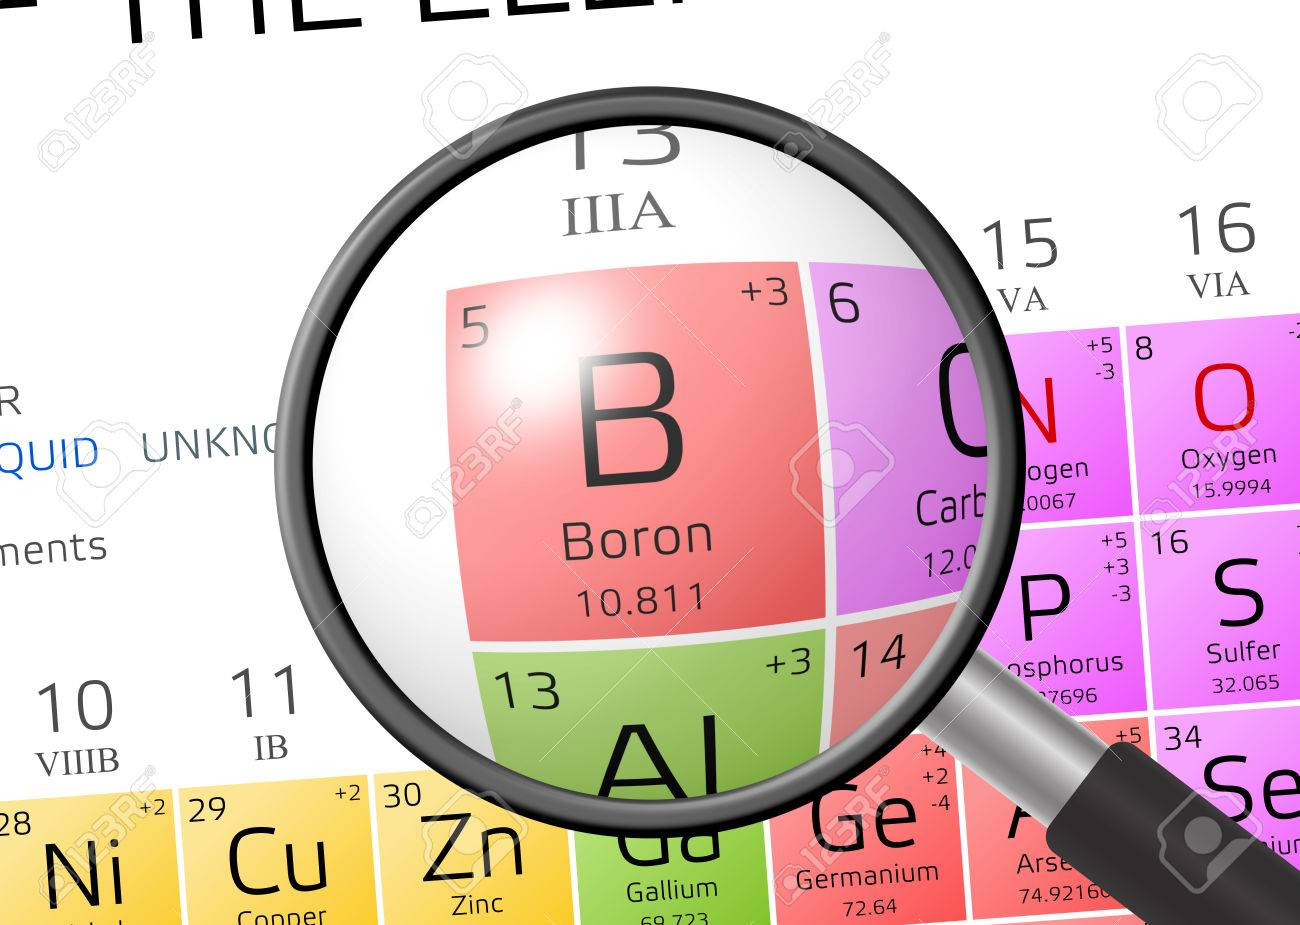 Boron From Periodic Table Of The Elements With Magnifying Glass